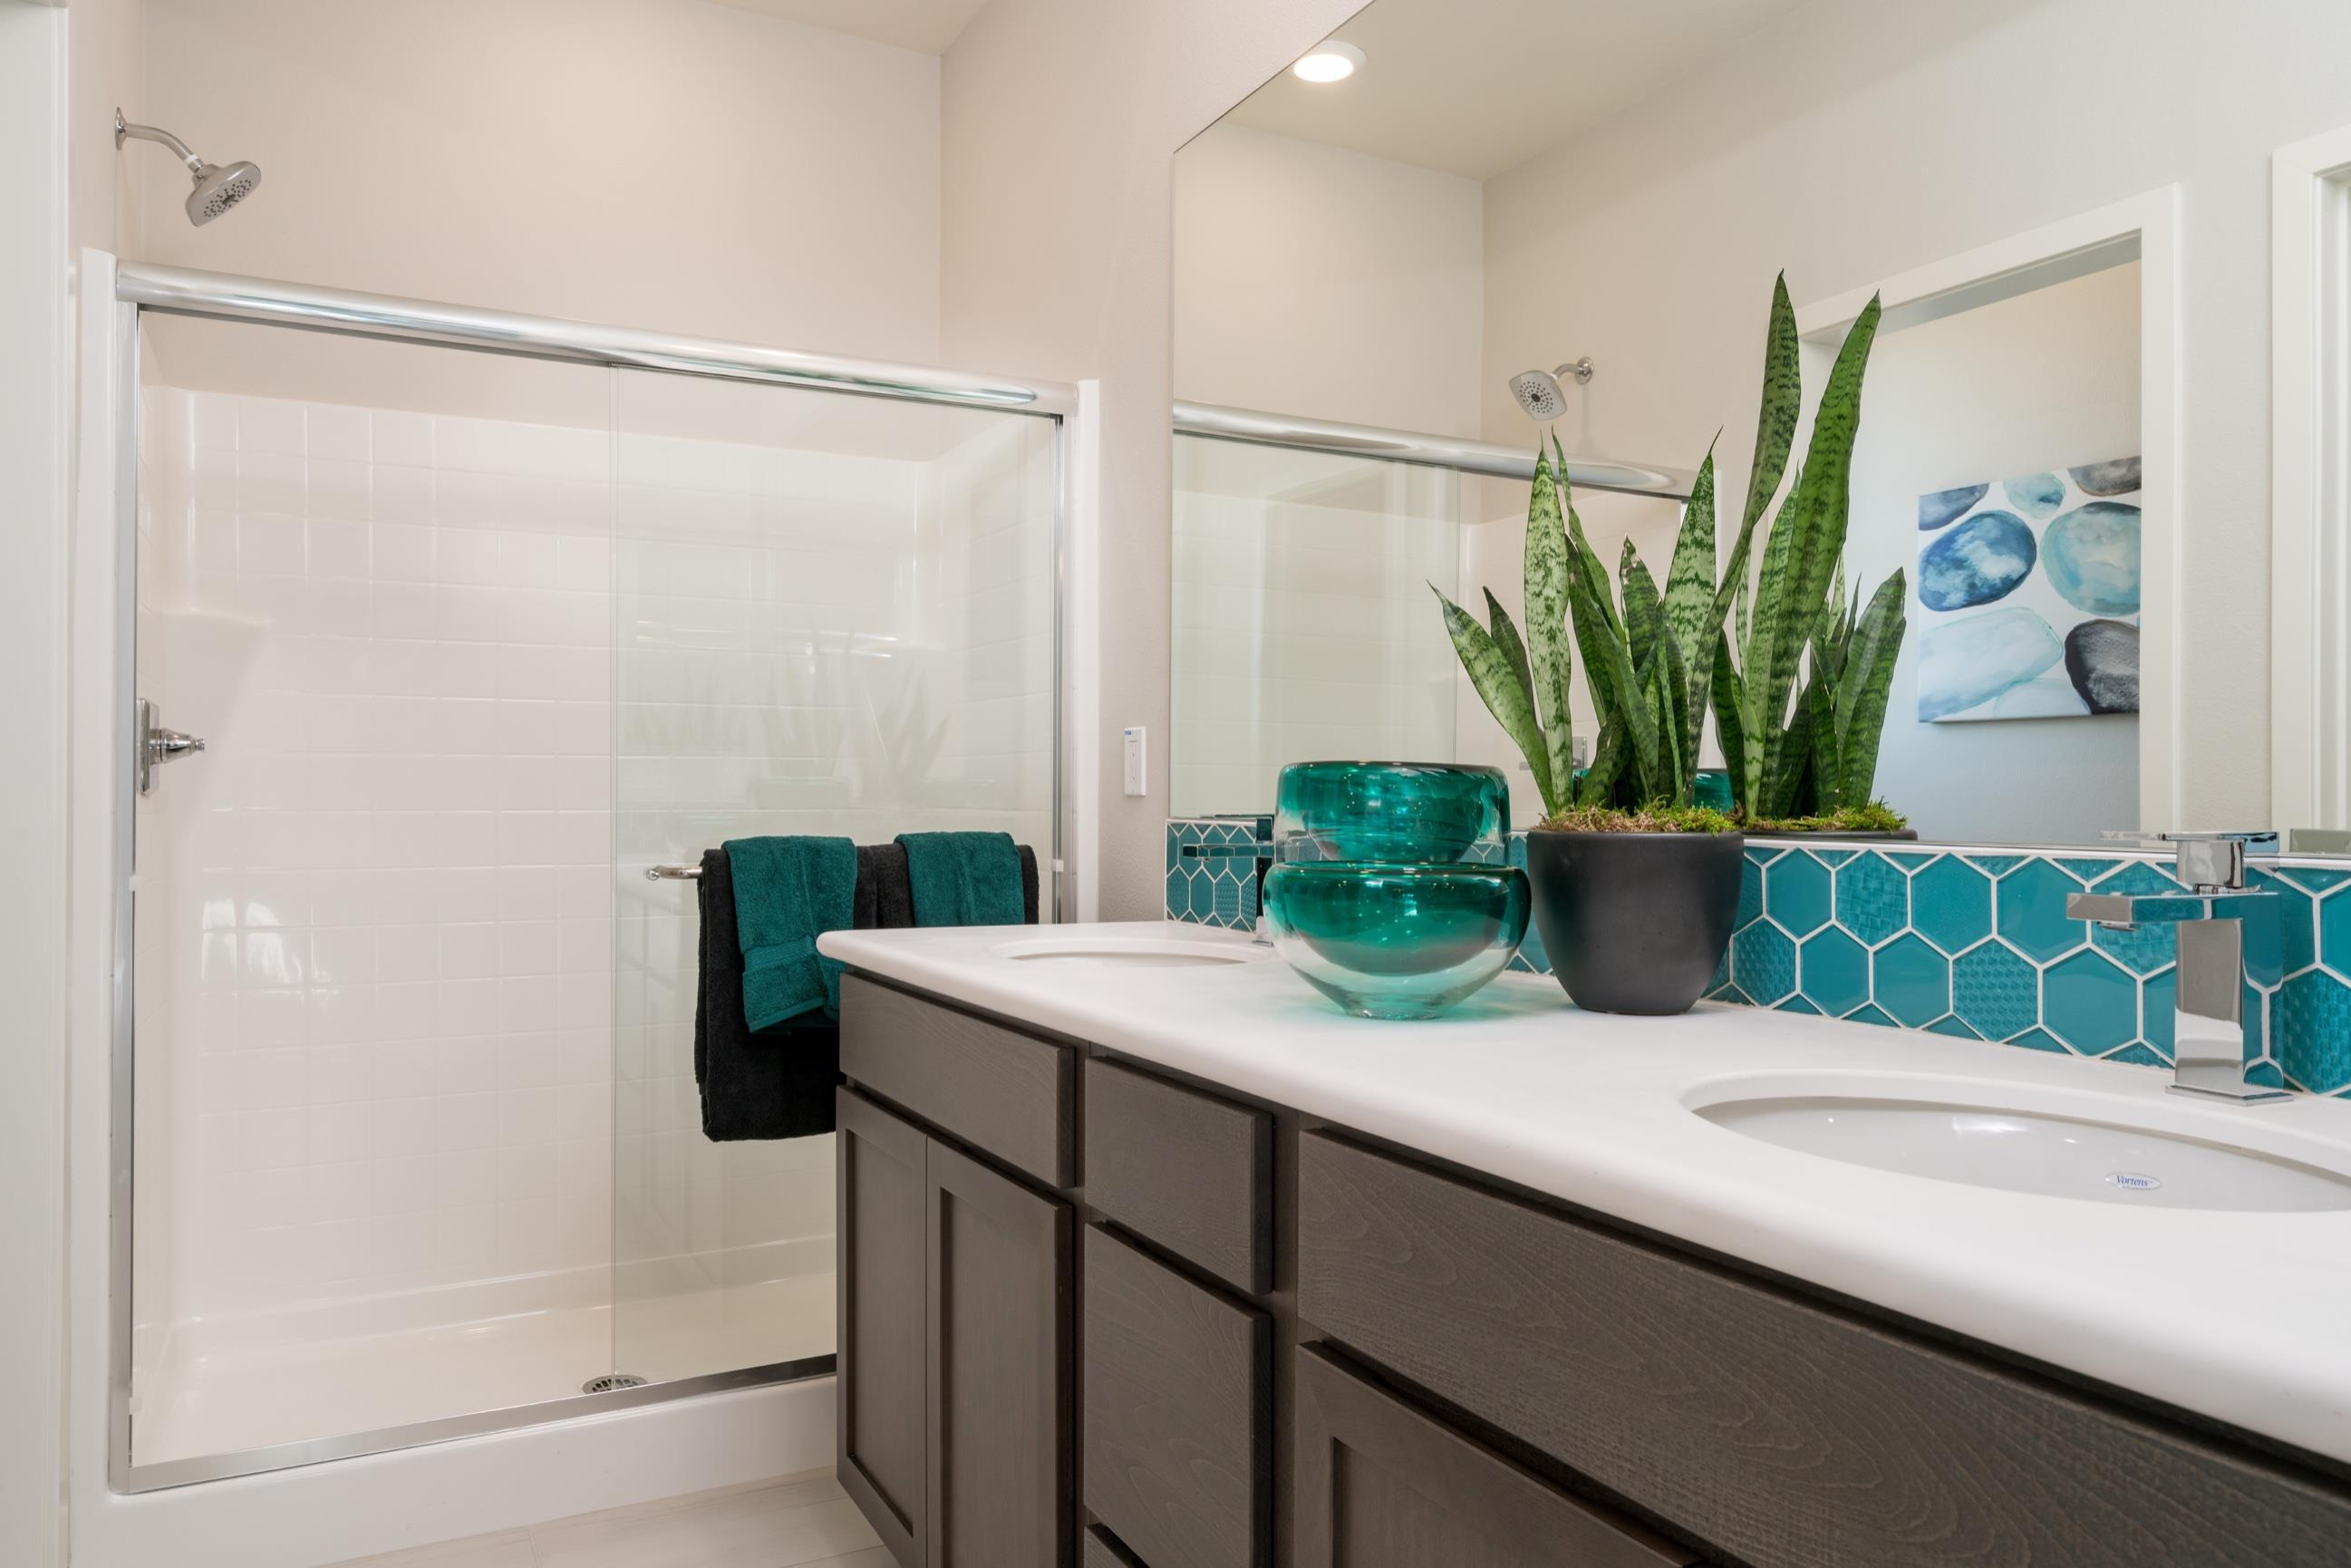 Bathroom featured in the Plan 2 By Heritage Building & Dev't in San Diego, CA